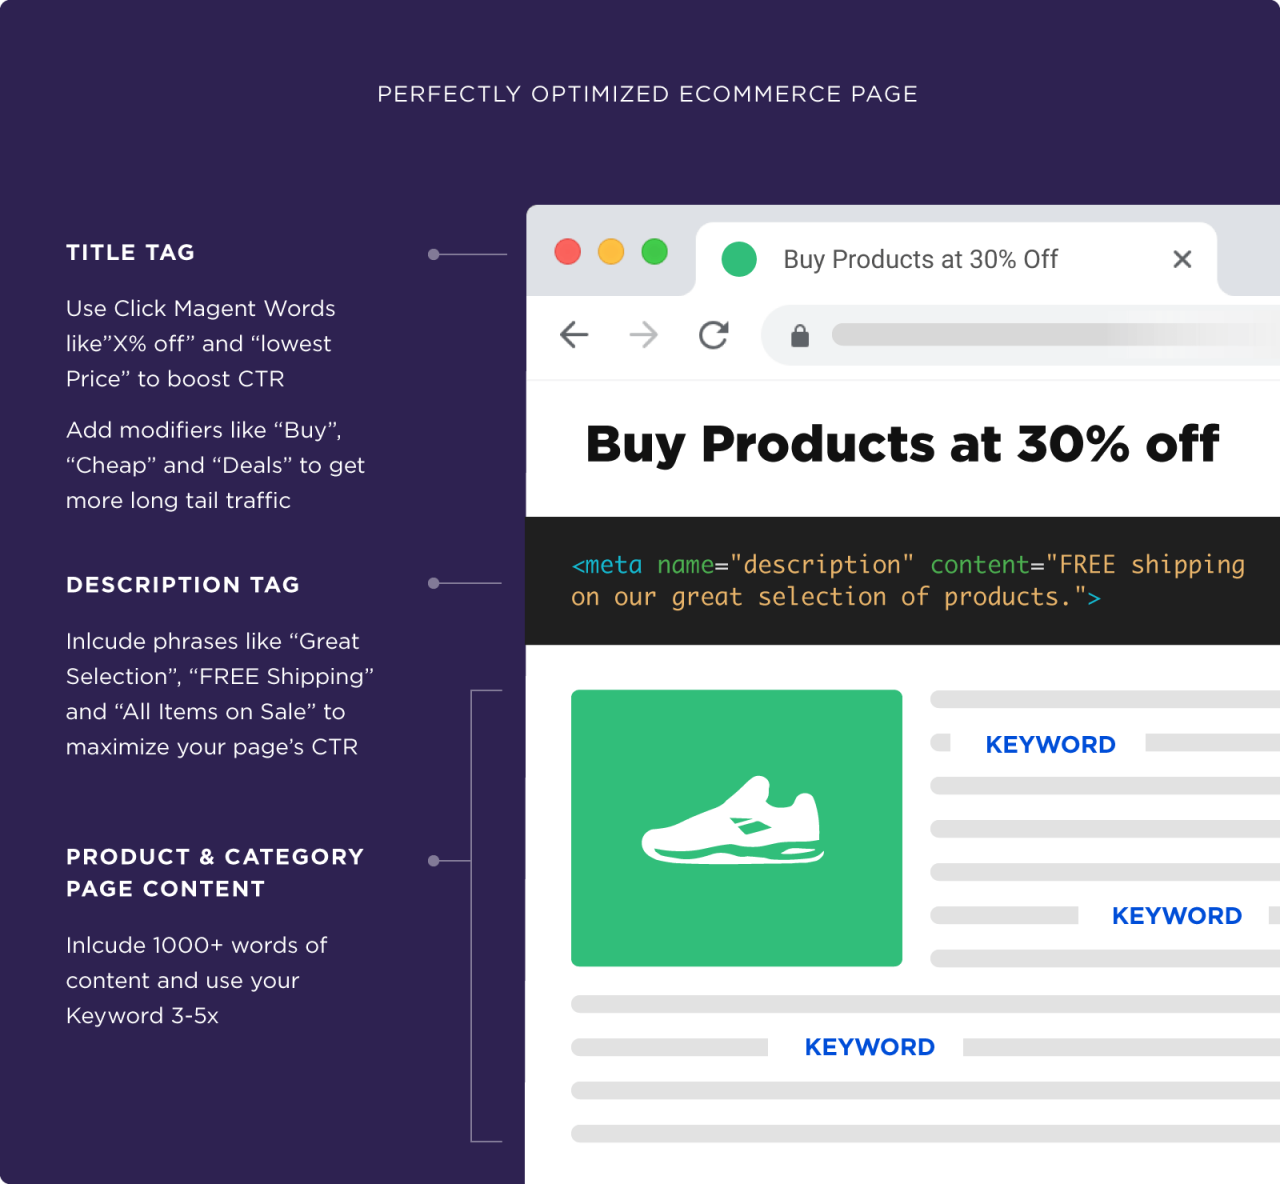 How to optimize an eCommerce page